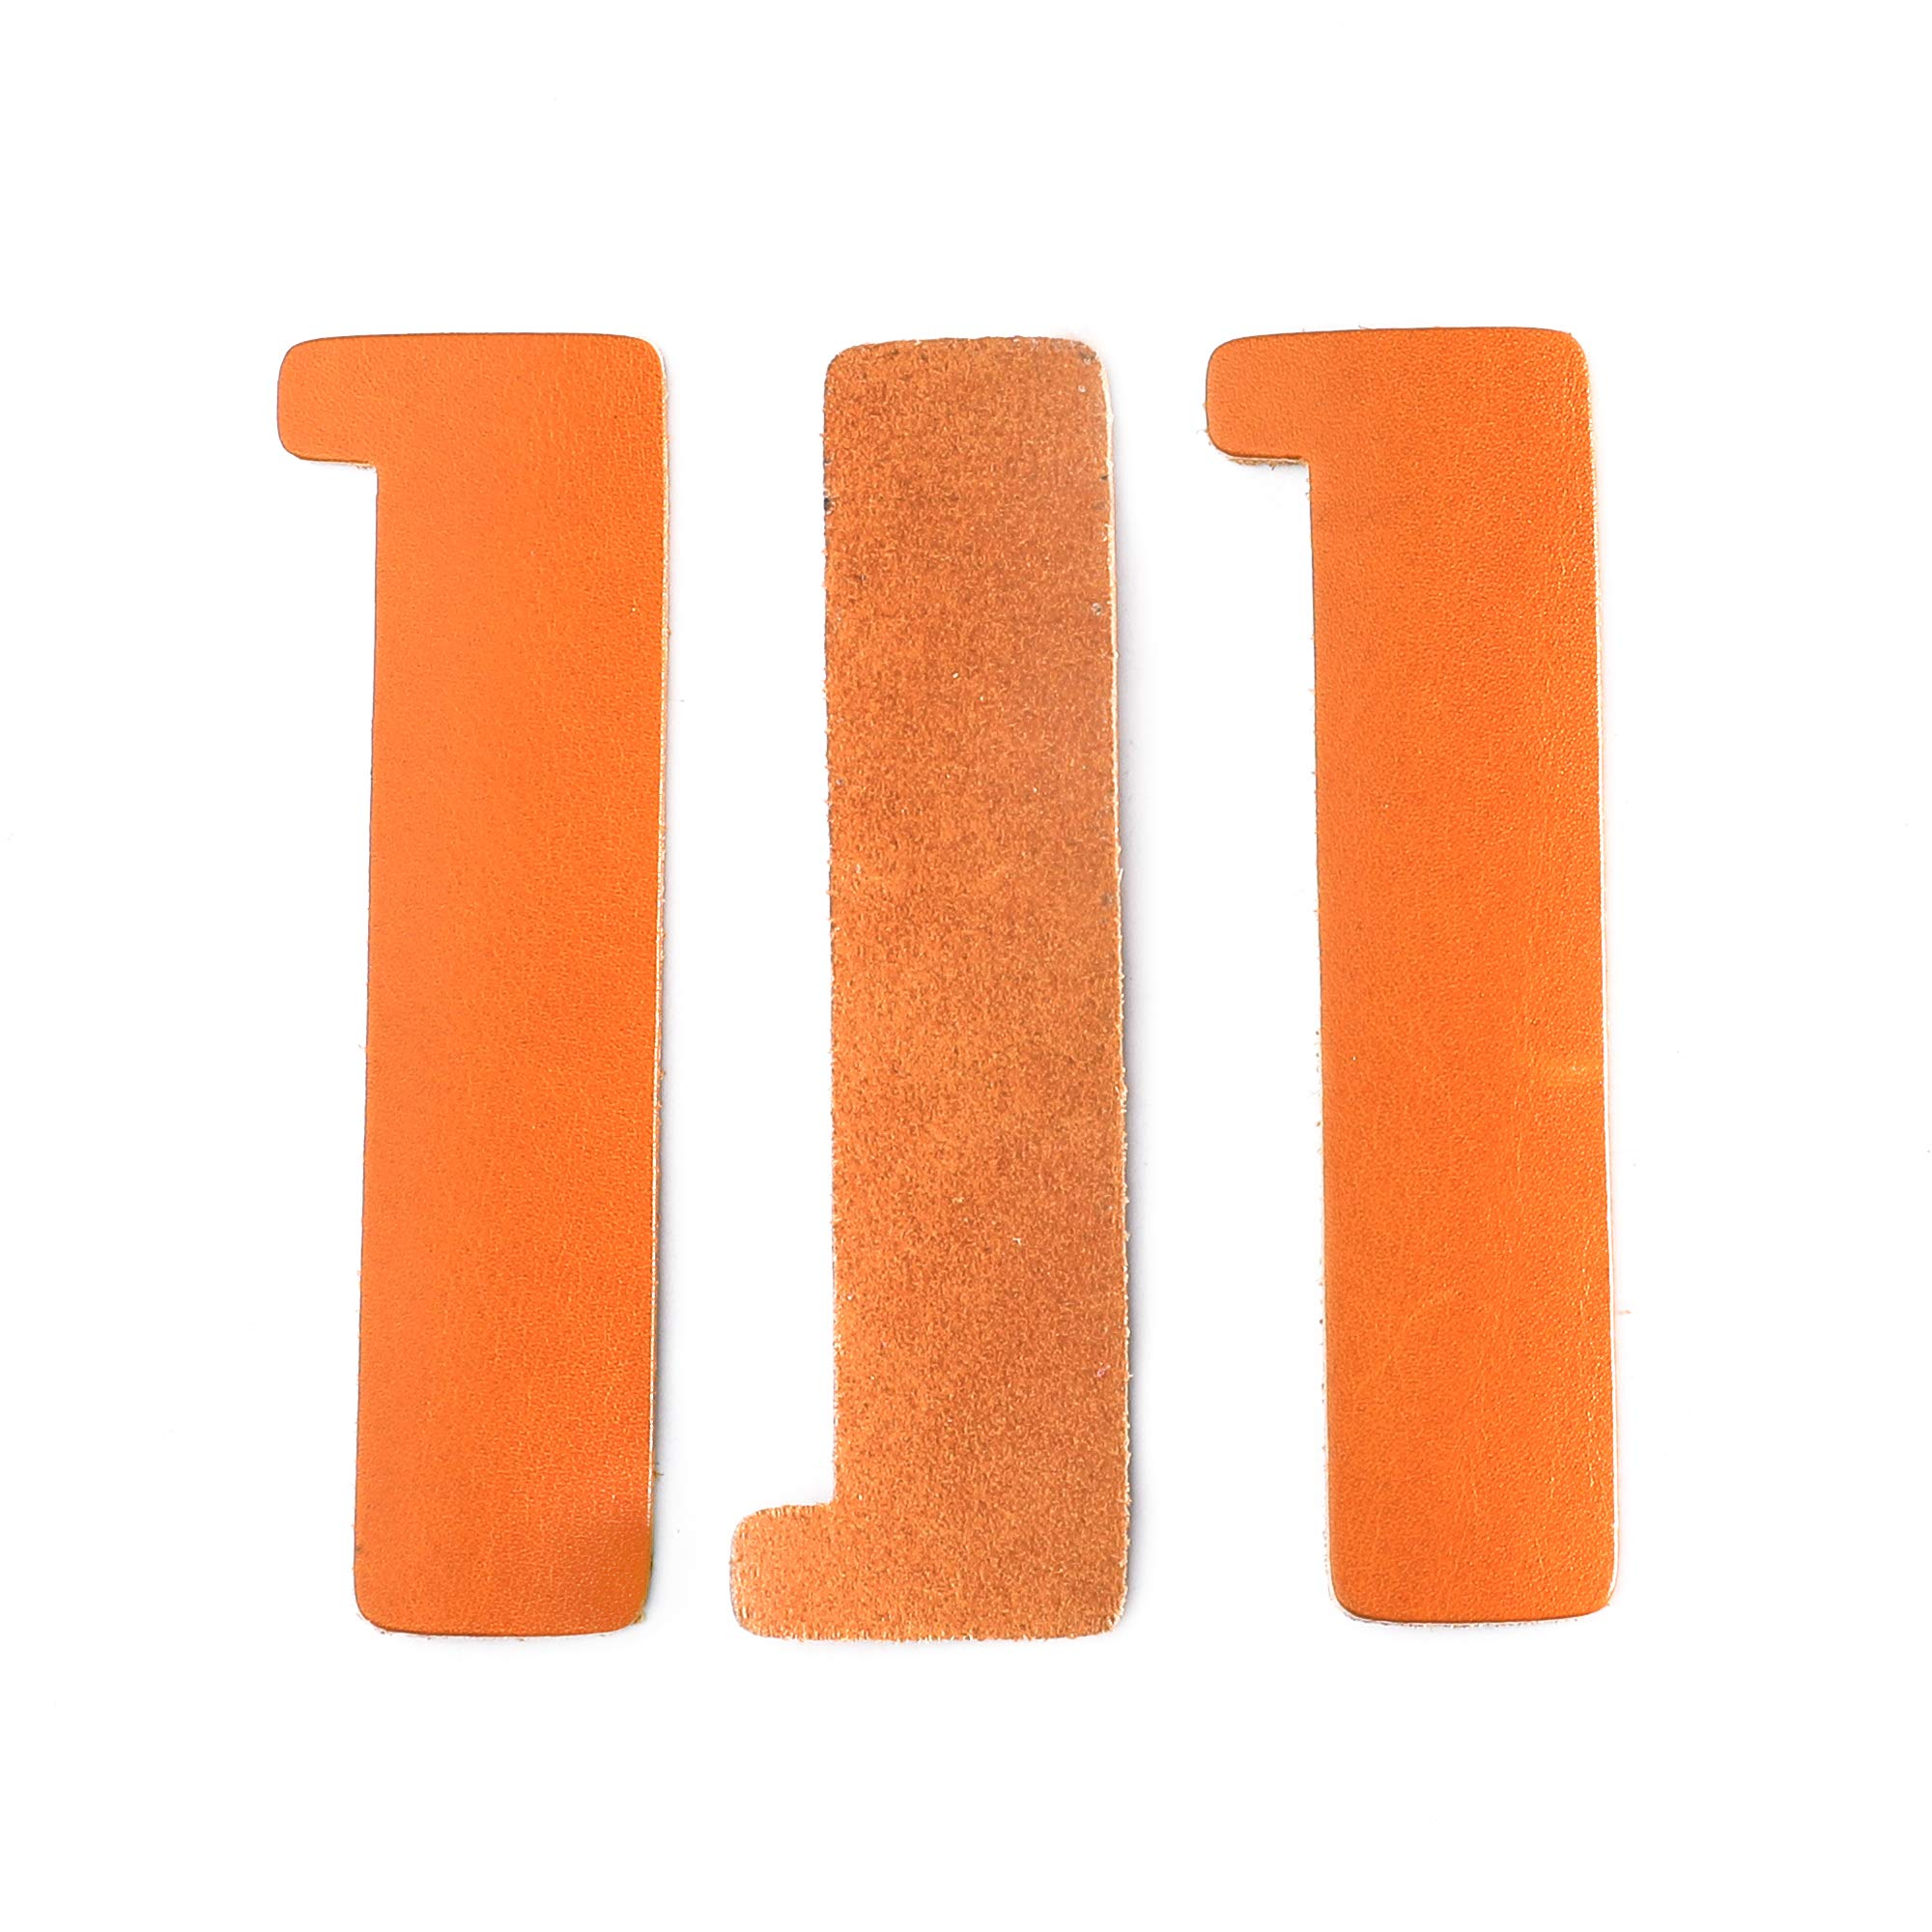 Vantoo Personalized Genuine Leather Bookmarks Corner for Men Women Teen Boys Girls Kids, Handmade Page Markers for Book Reading,Perfect Gift for Reader Writers Poets (Orange 2)